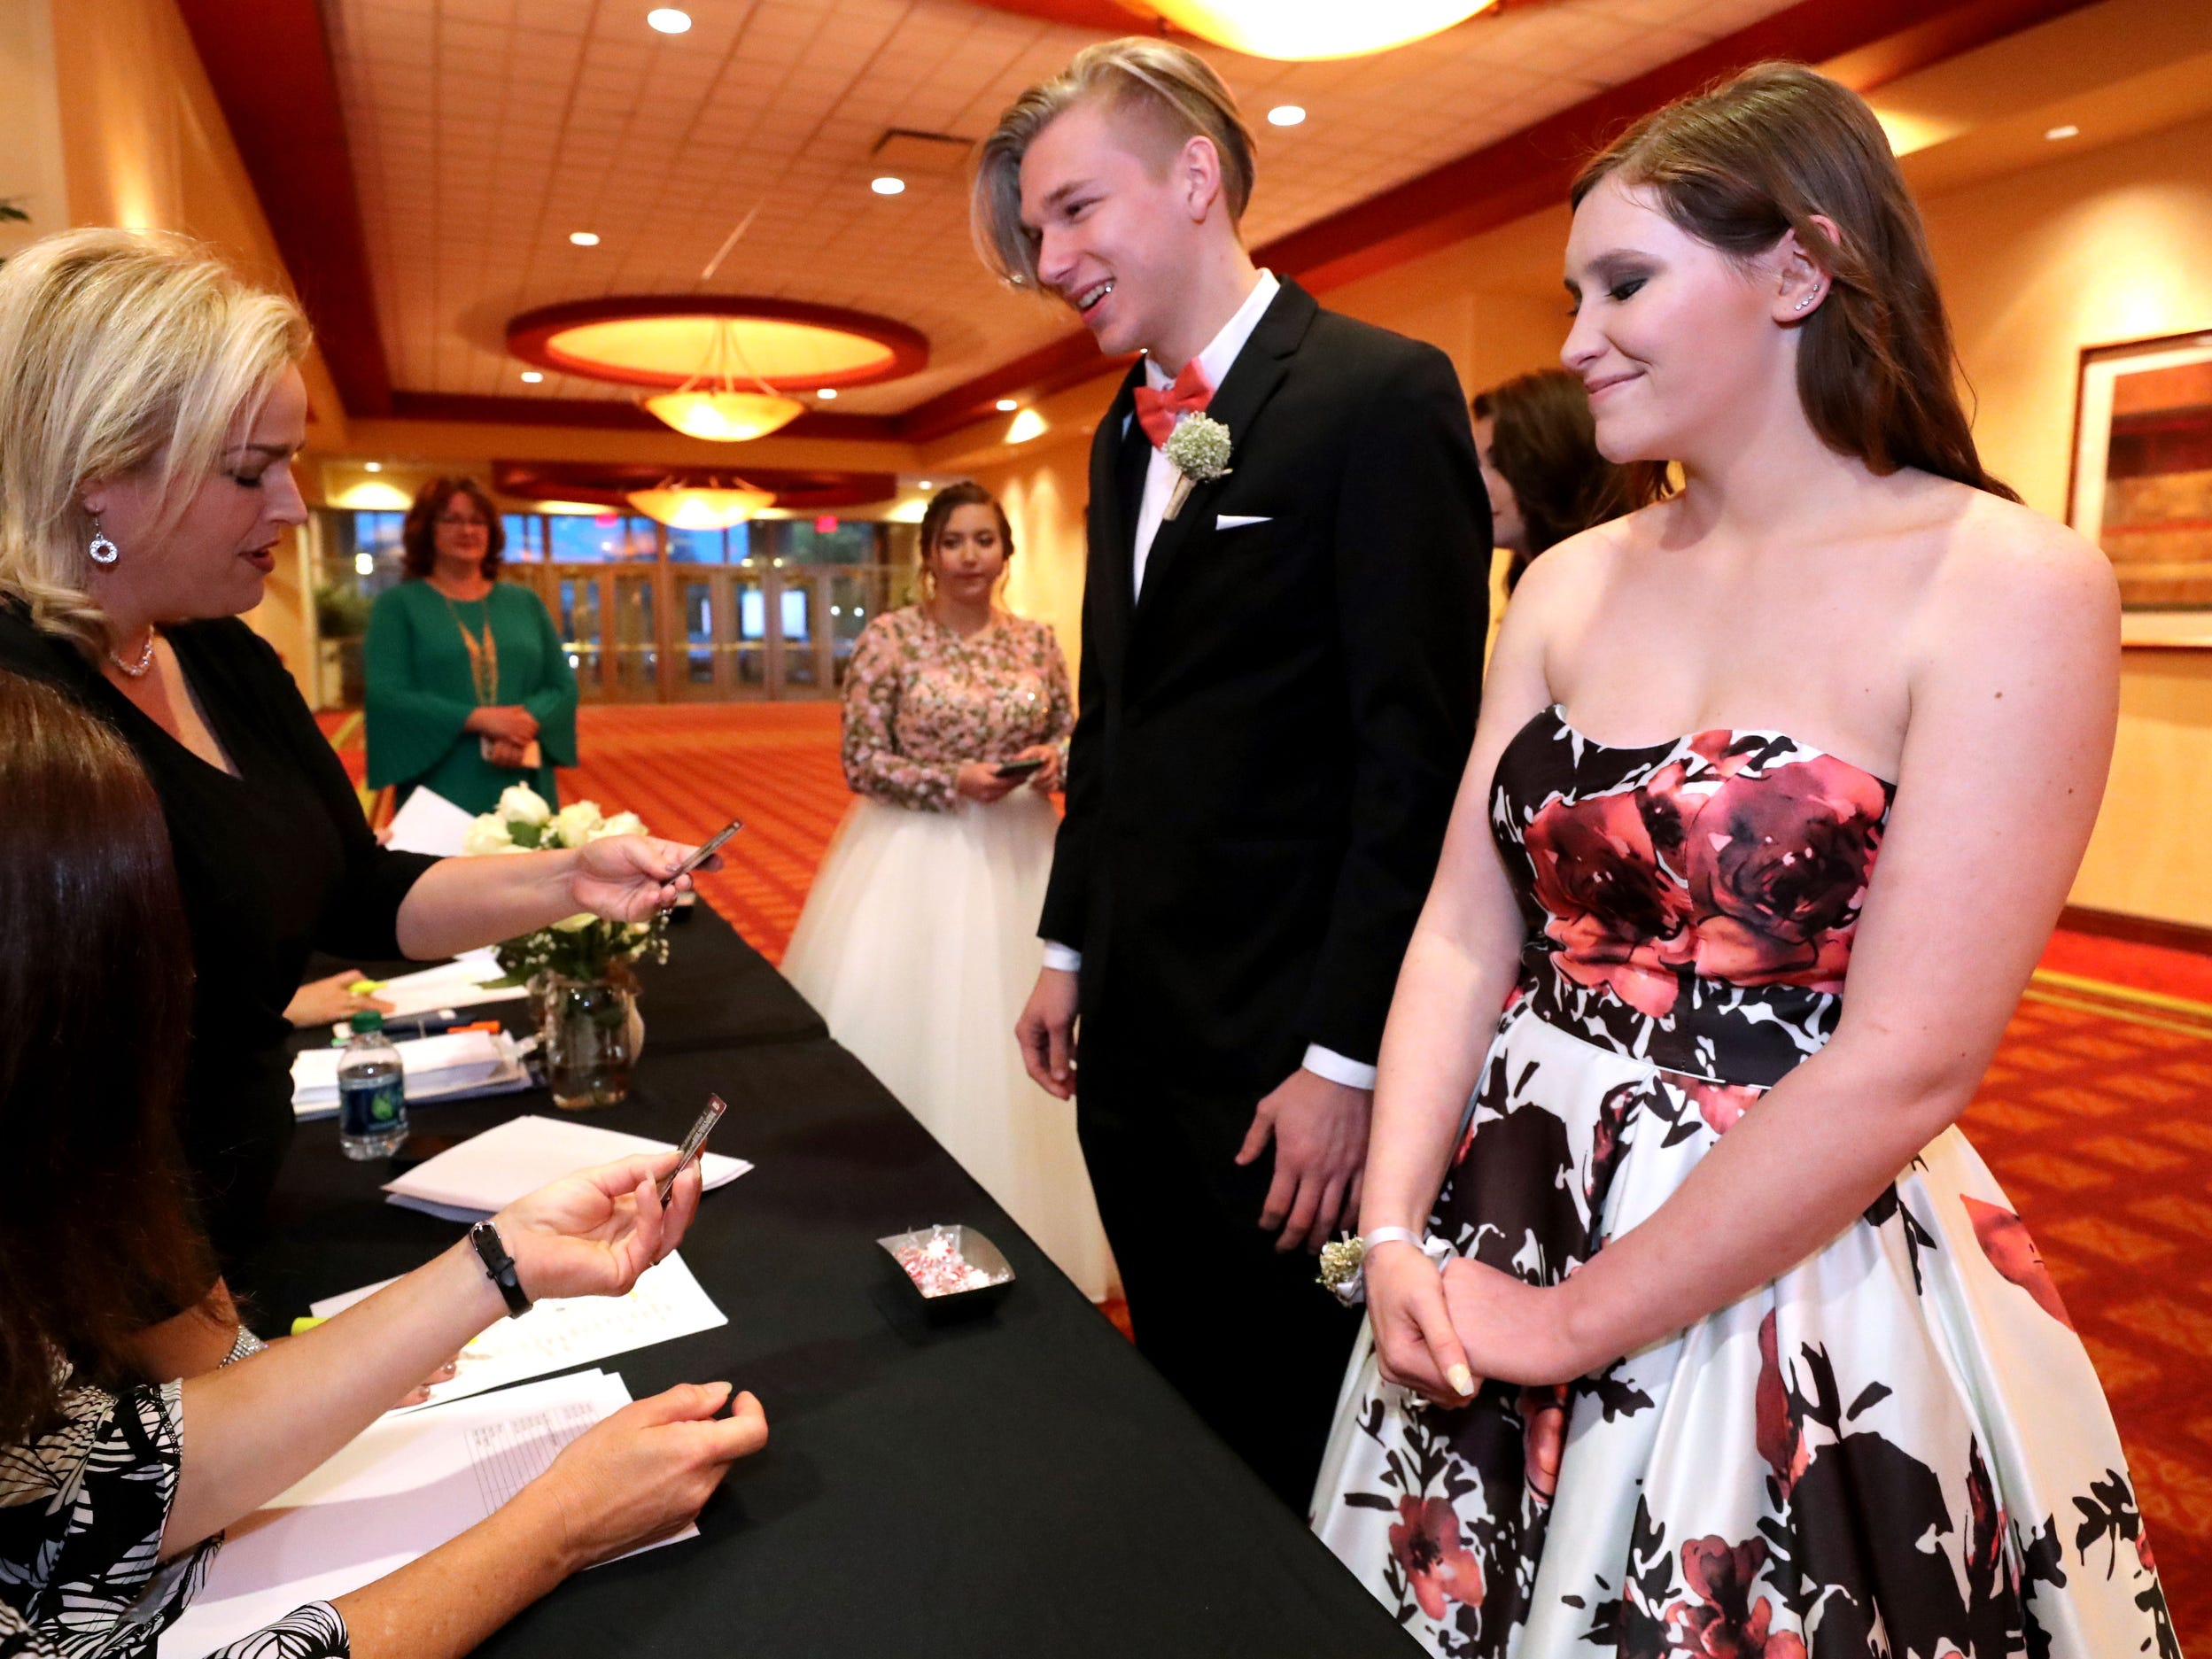 Jadyn Fox and Natalie Taylor check in at Eagleville's  Prom held at Embassy Suites, in Murfreesboro on Thursday April 5, 2019.